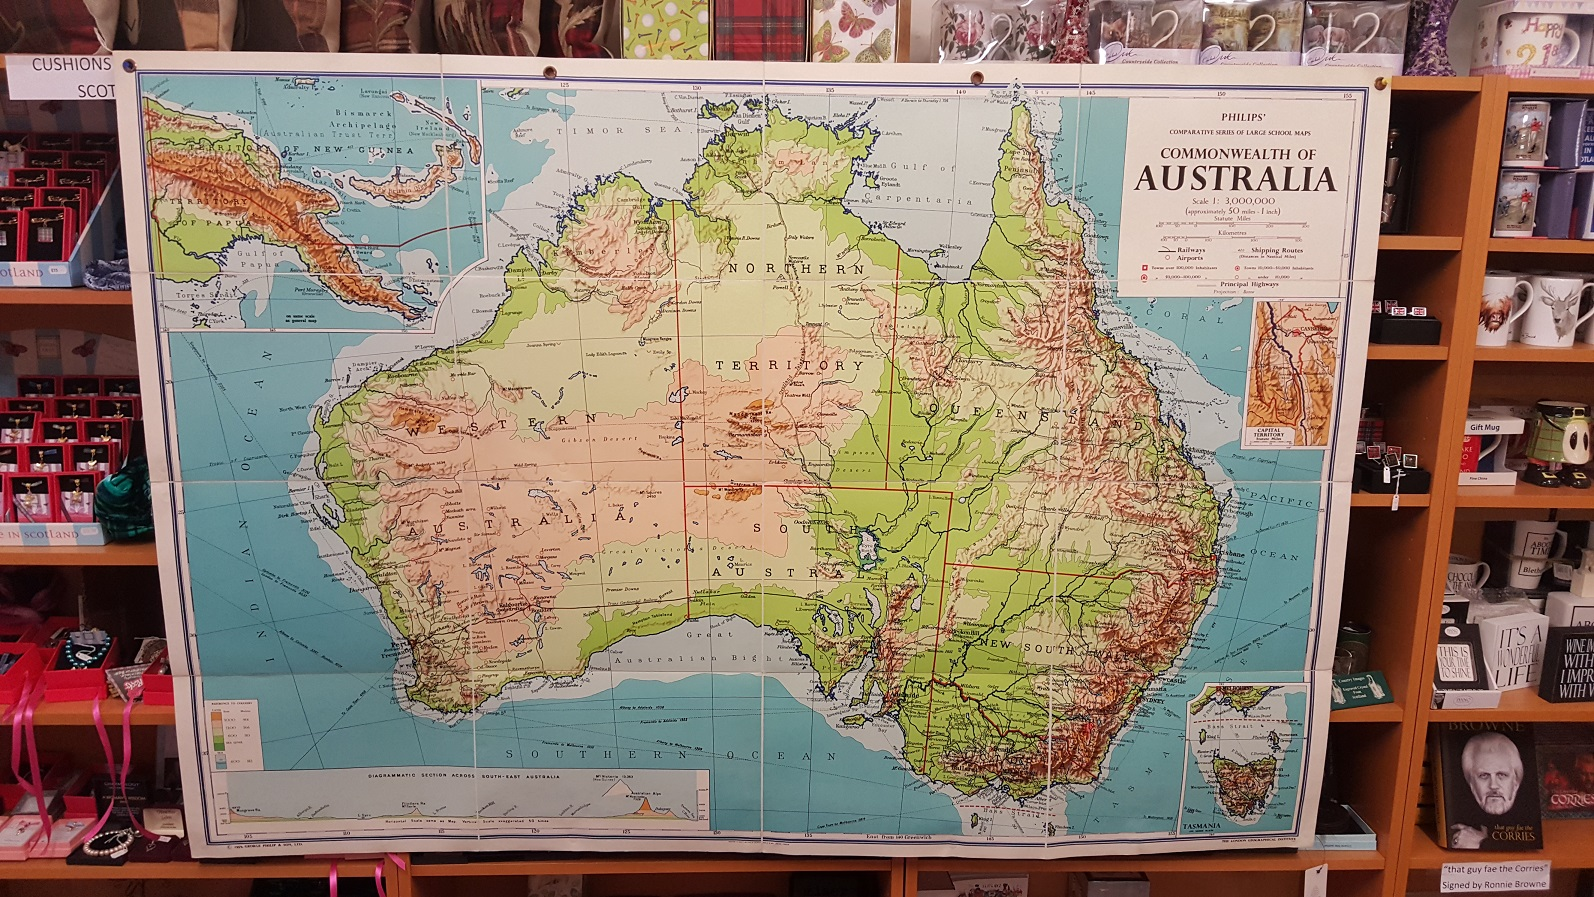 Philips  Large School Room Map of Australia   Physical  Image for Philips  Large School Room Map of Australia   Physical